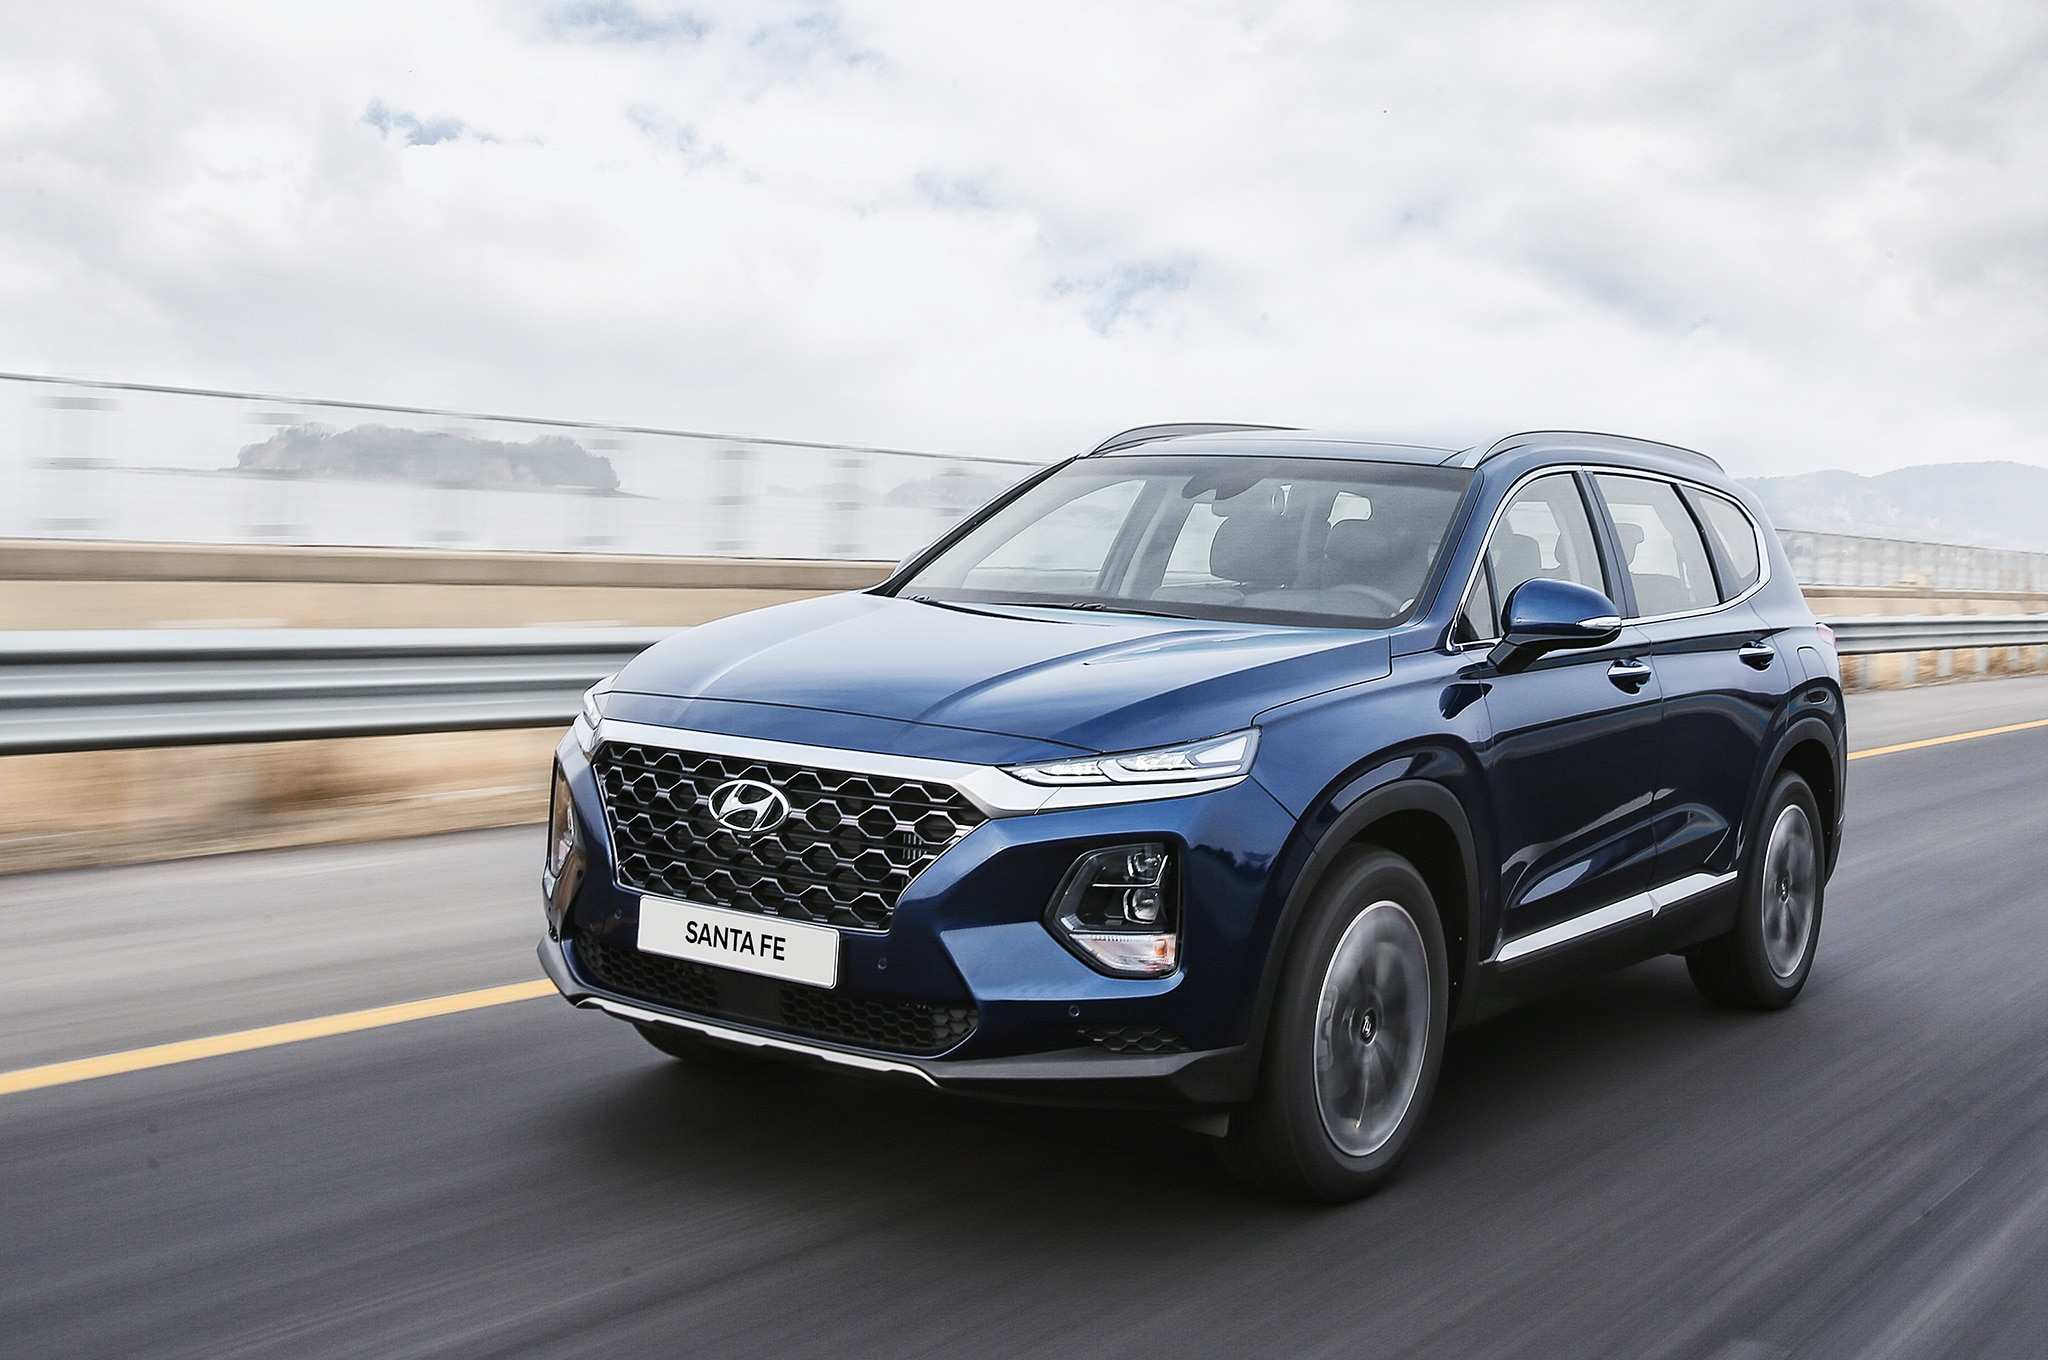 54 New The Santa Fe Kia 2019 Rumors Performance